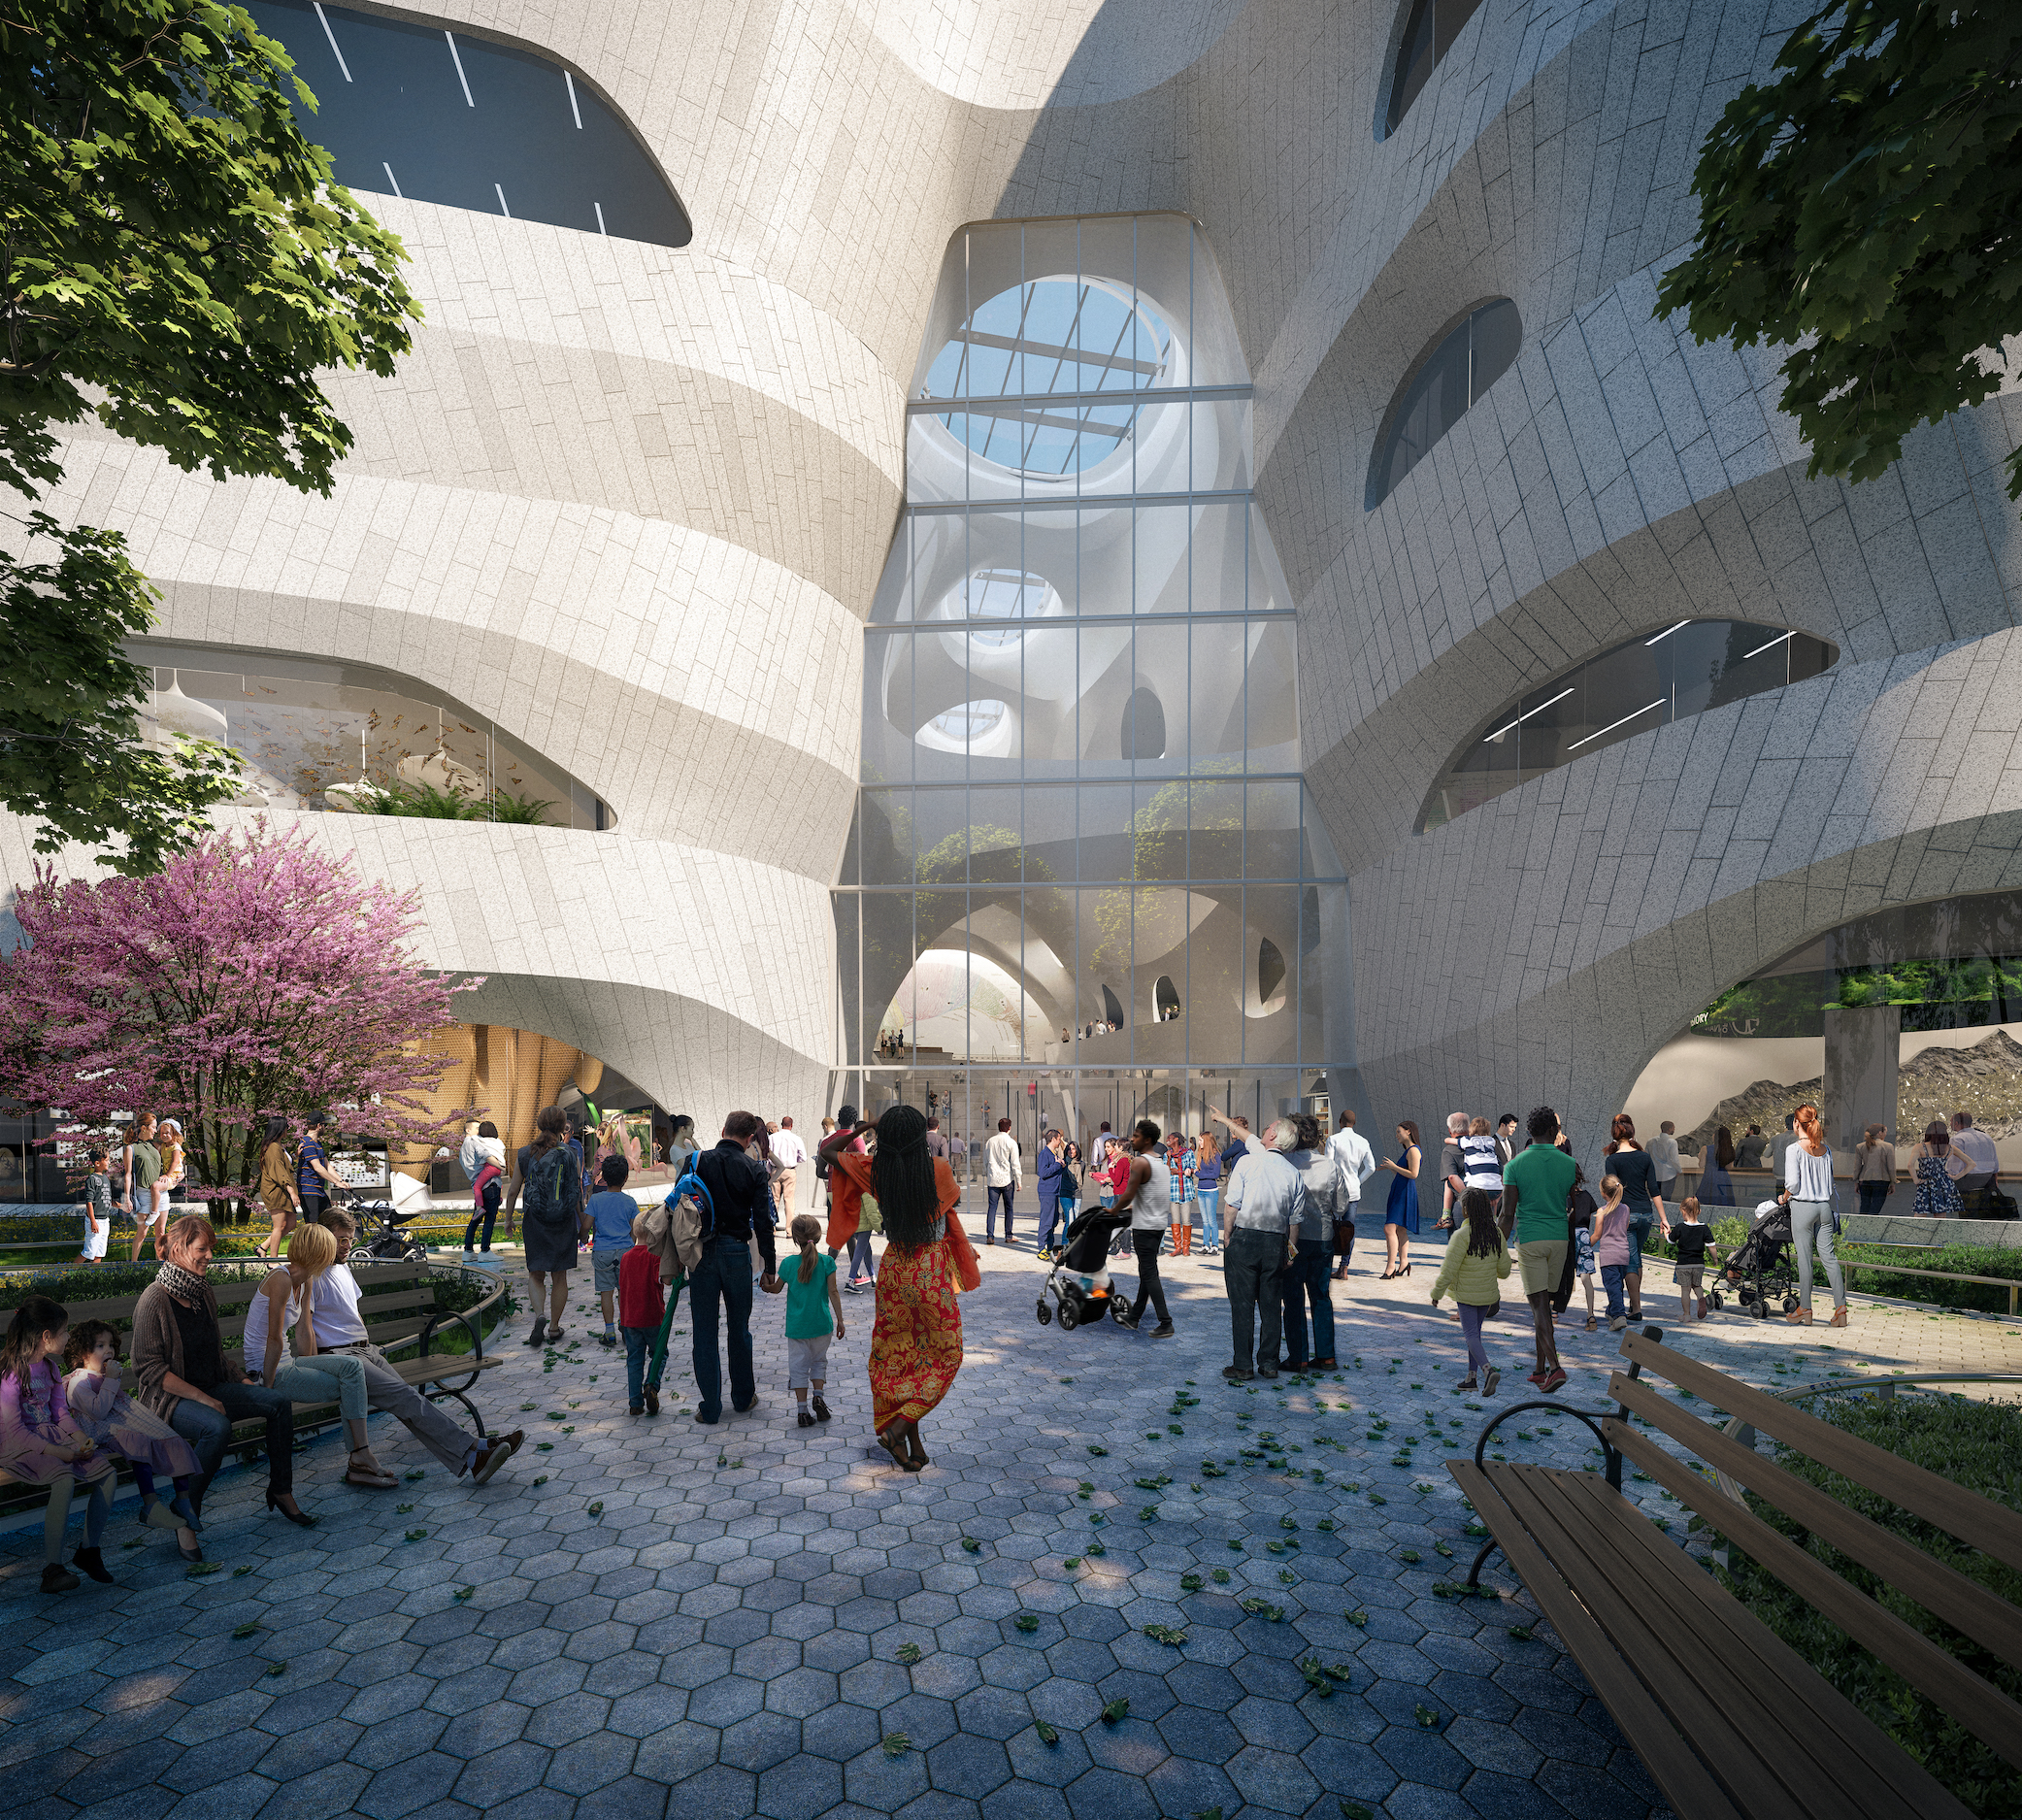 American Museum of Natural History finally breaks ground on long-planned expansion